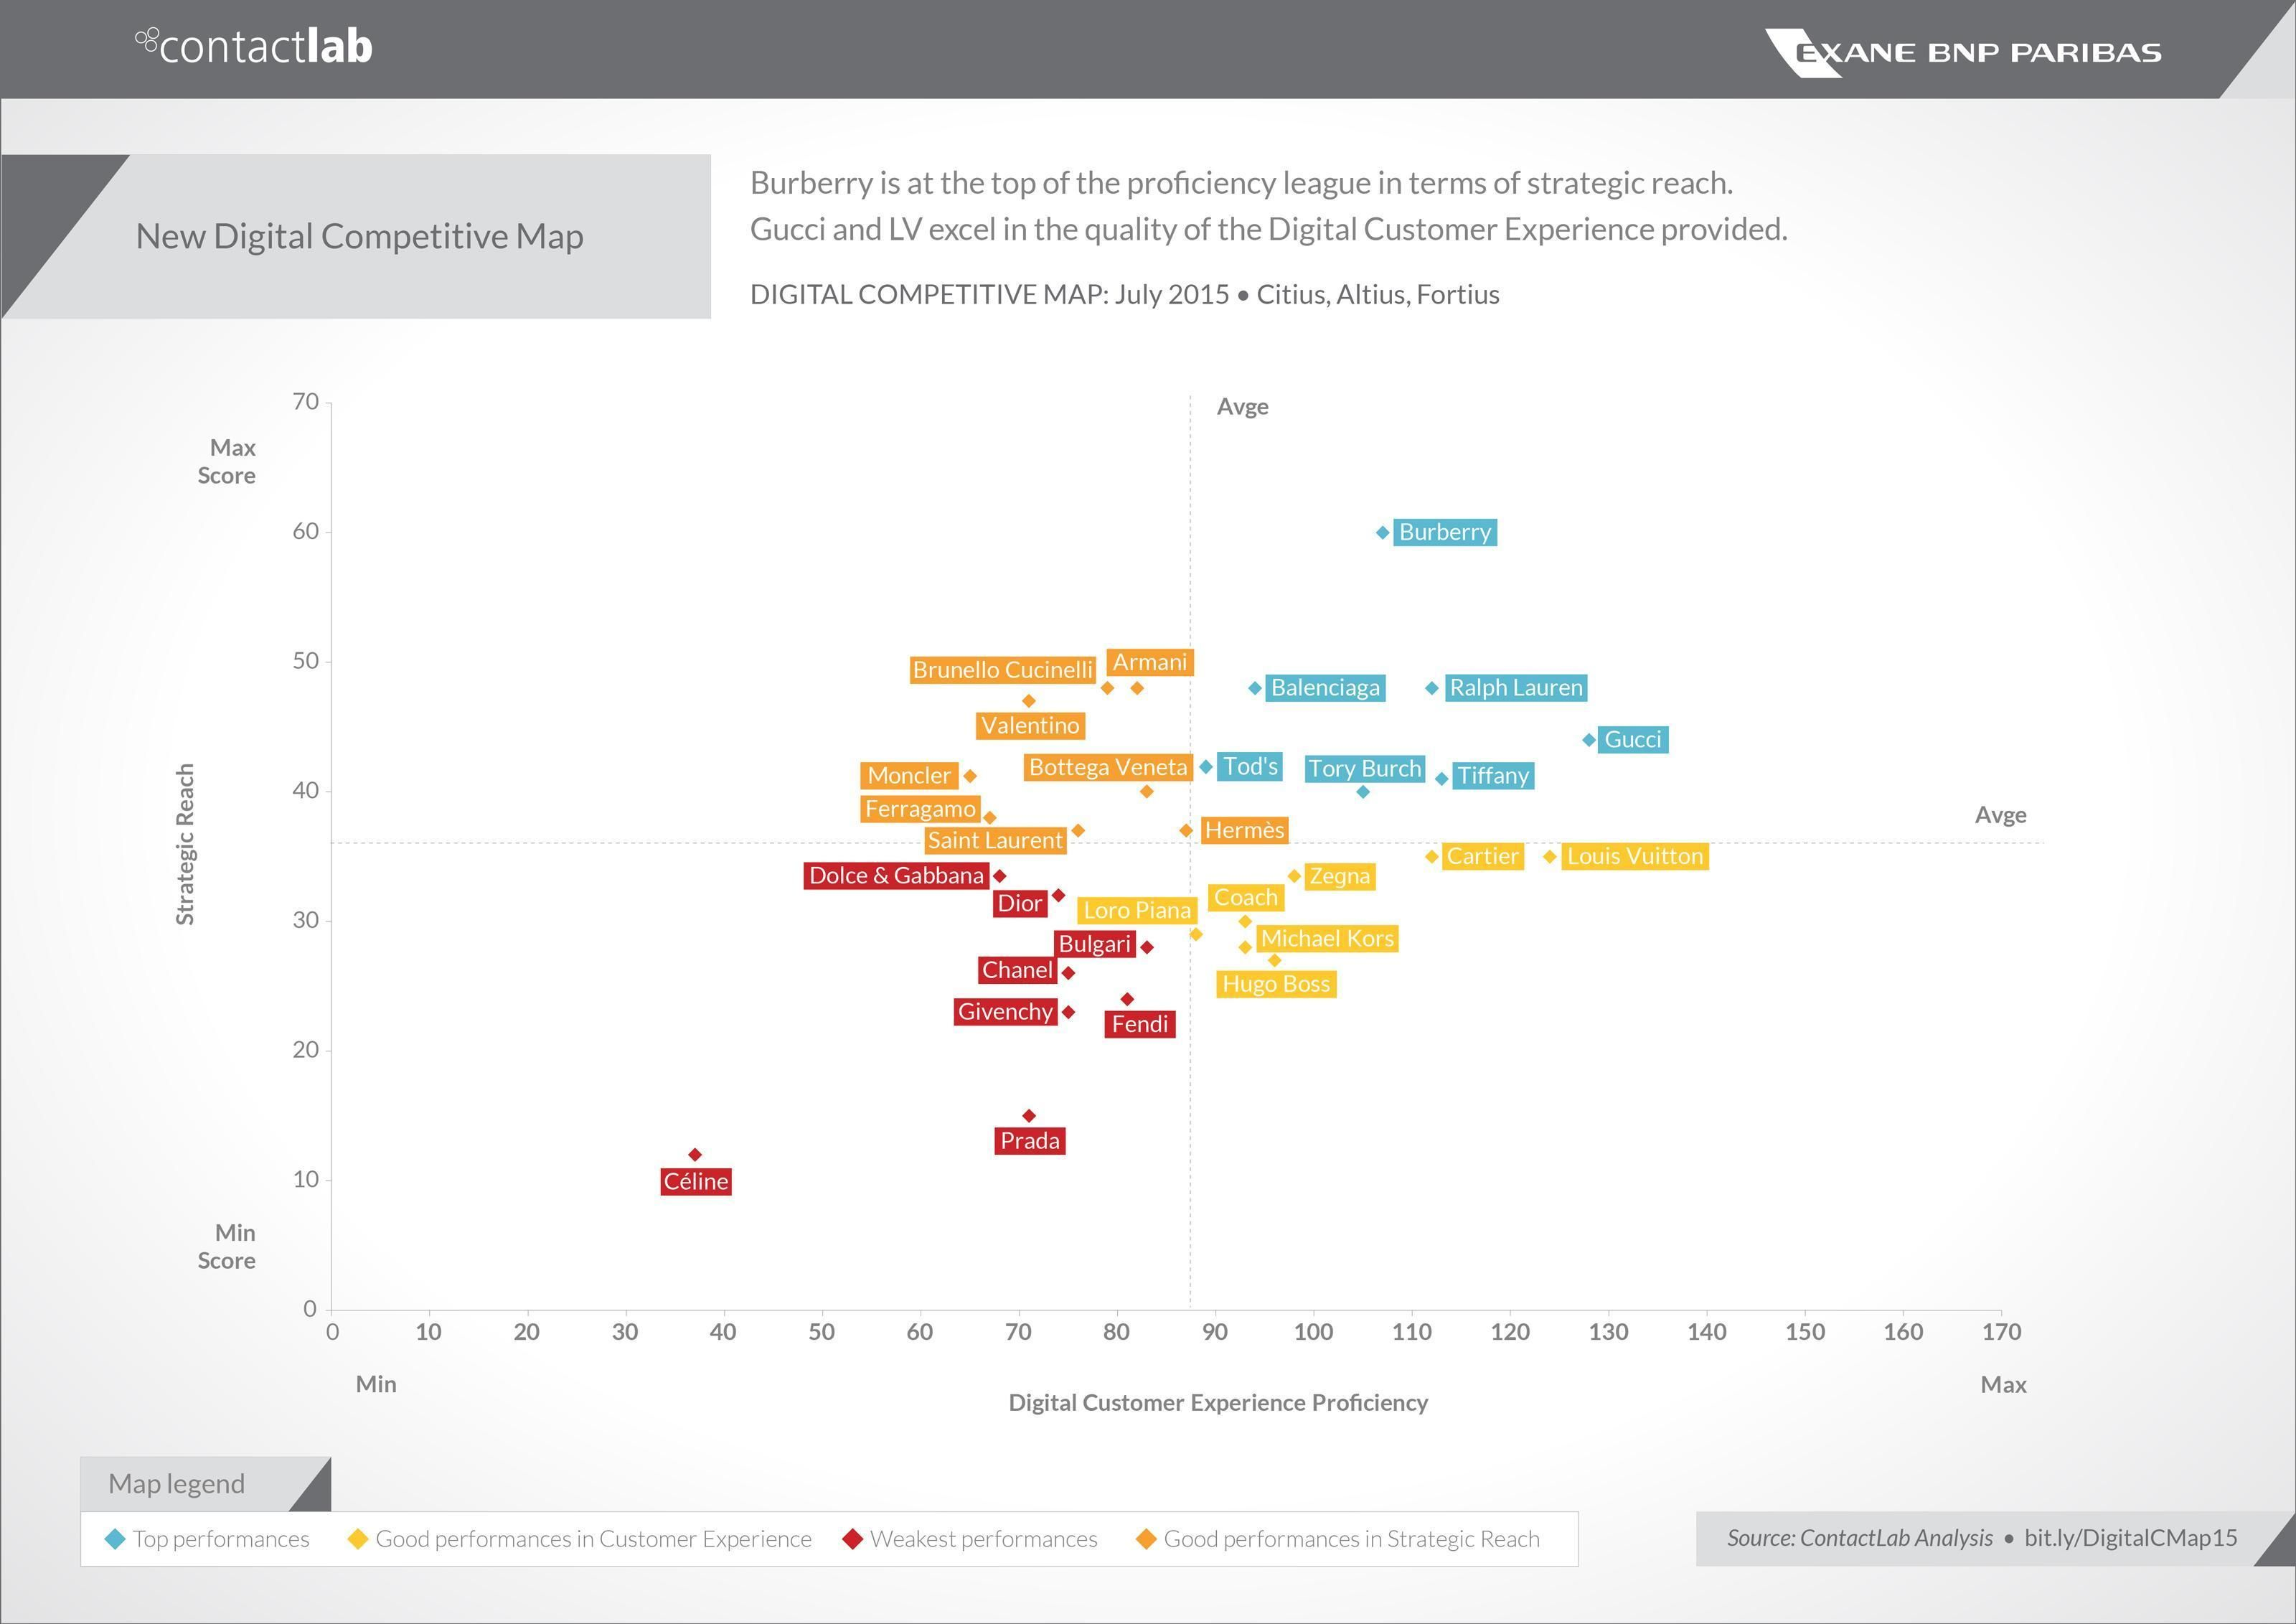 #Fashion #Digital Competitive Map by ContactLab and Exane BNP Paribas